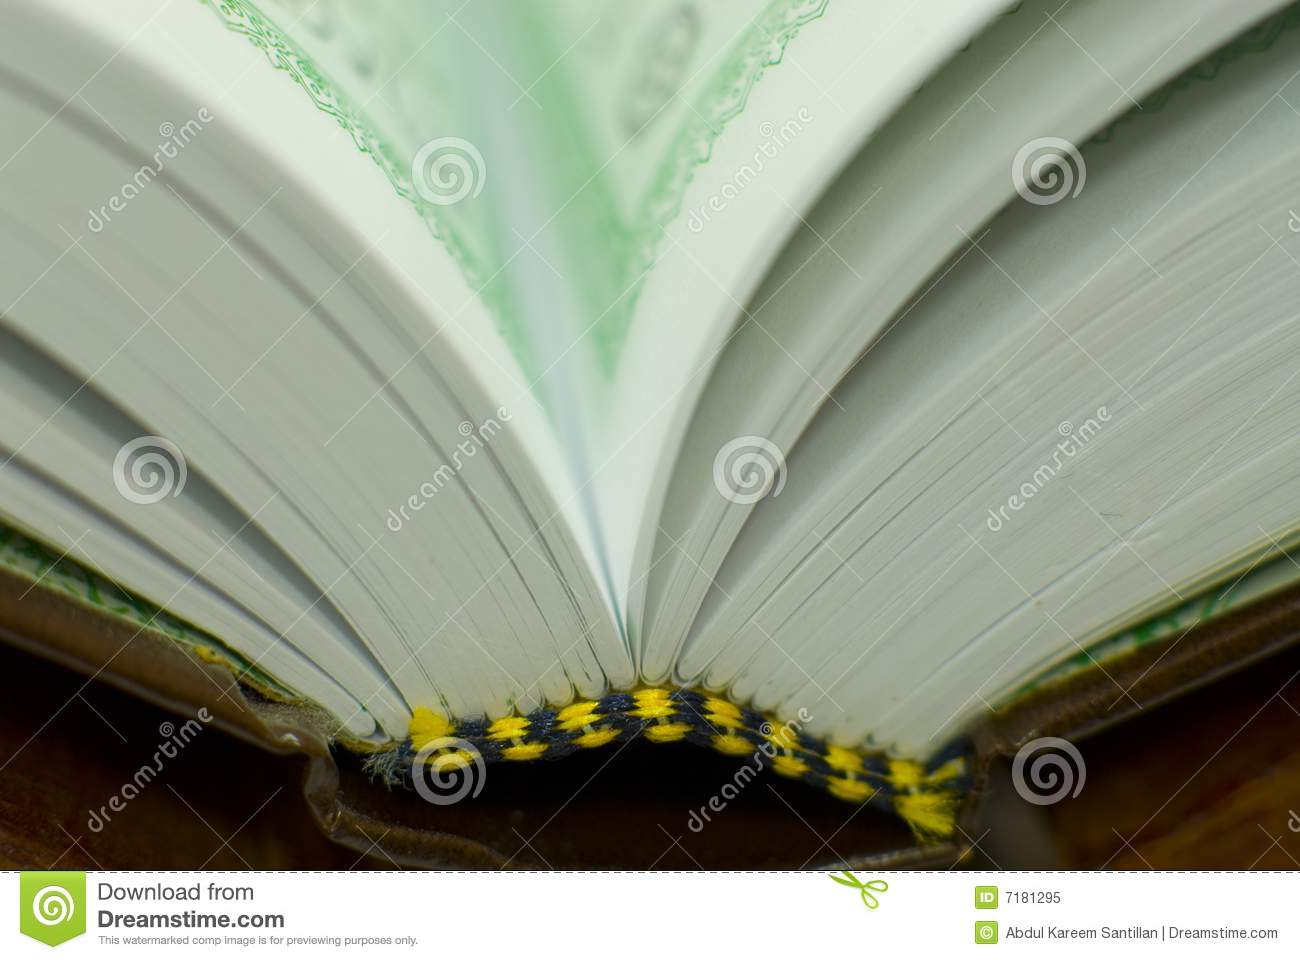 Quran Pages stock image. Image of book, quran, pages, abstract - 7181295